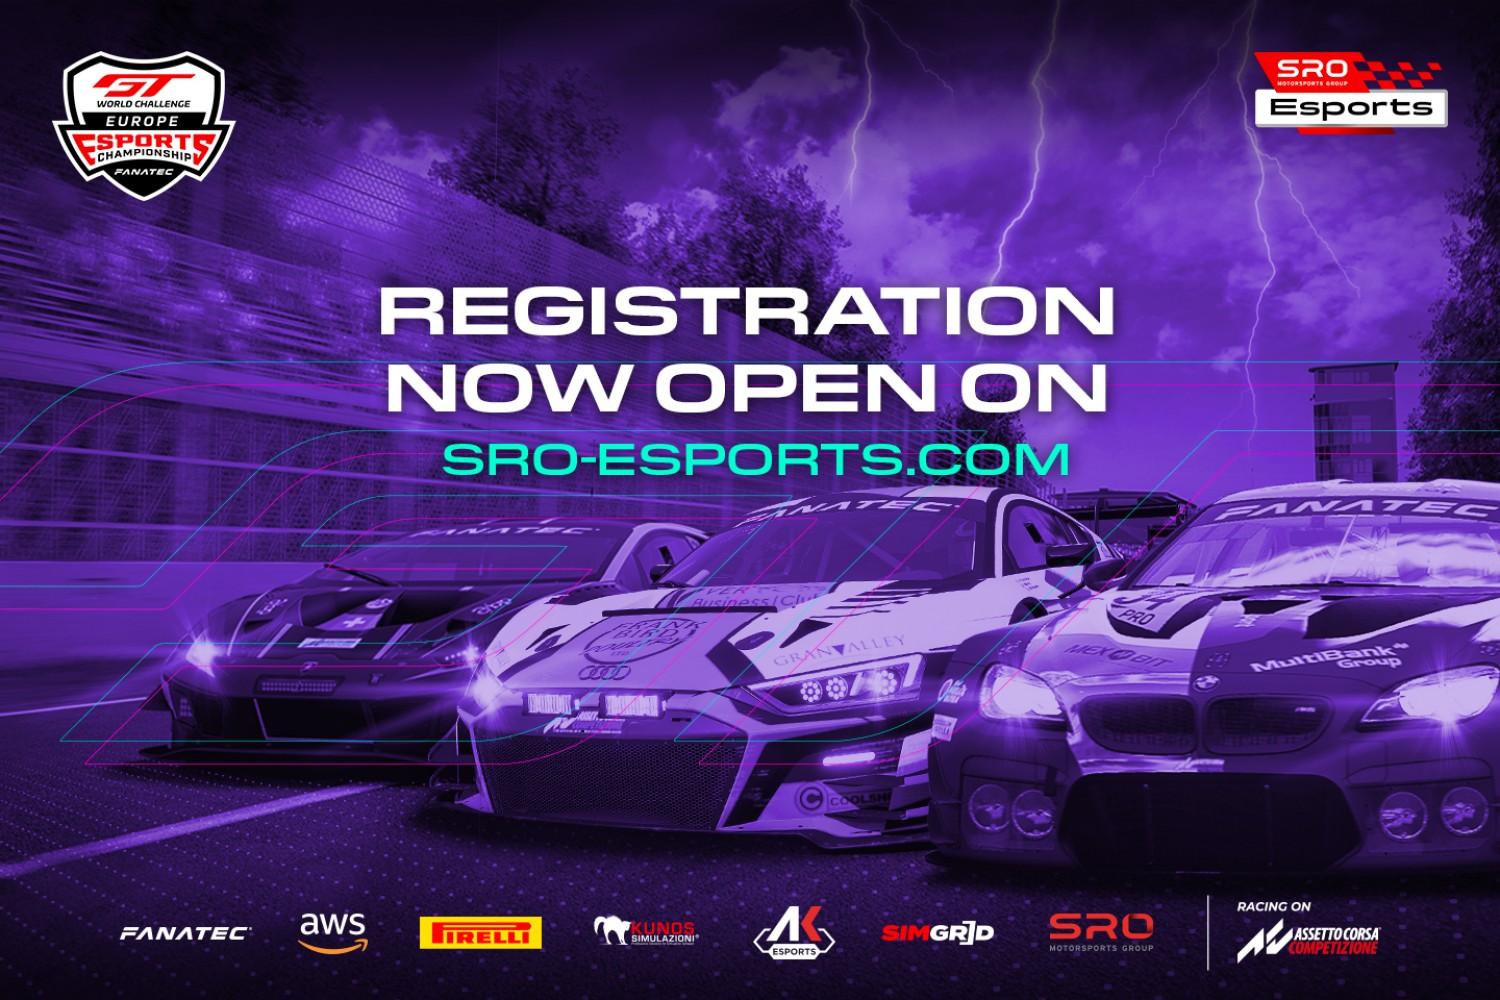 GT World Challenge Esports registration now open